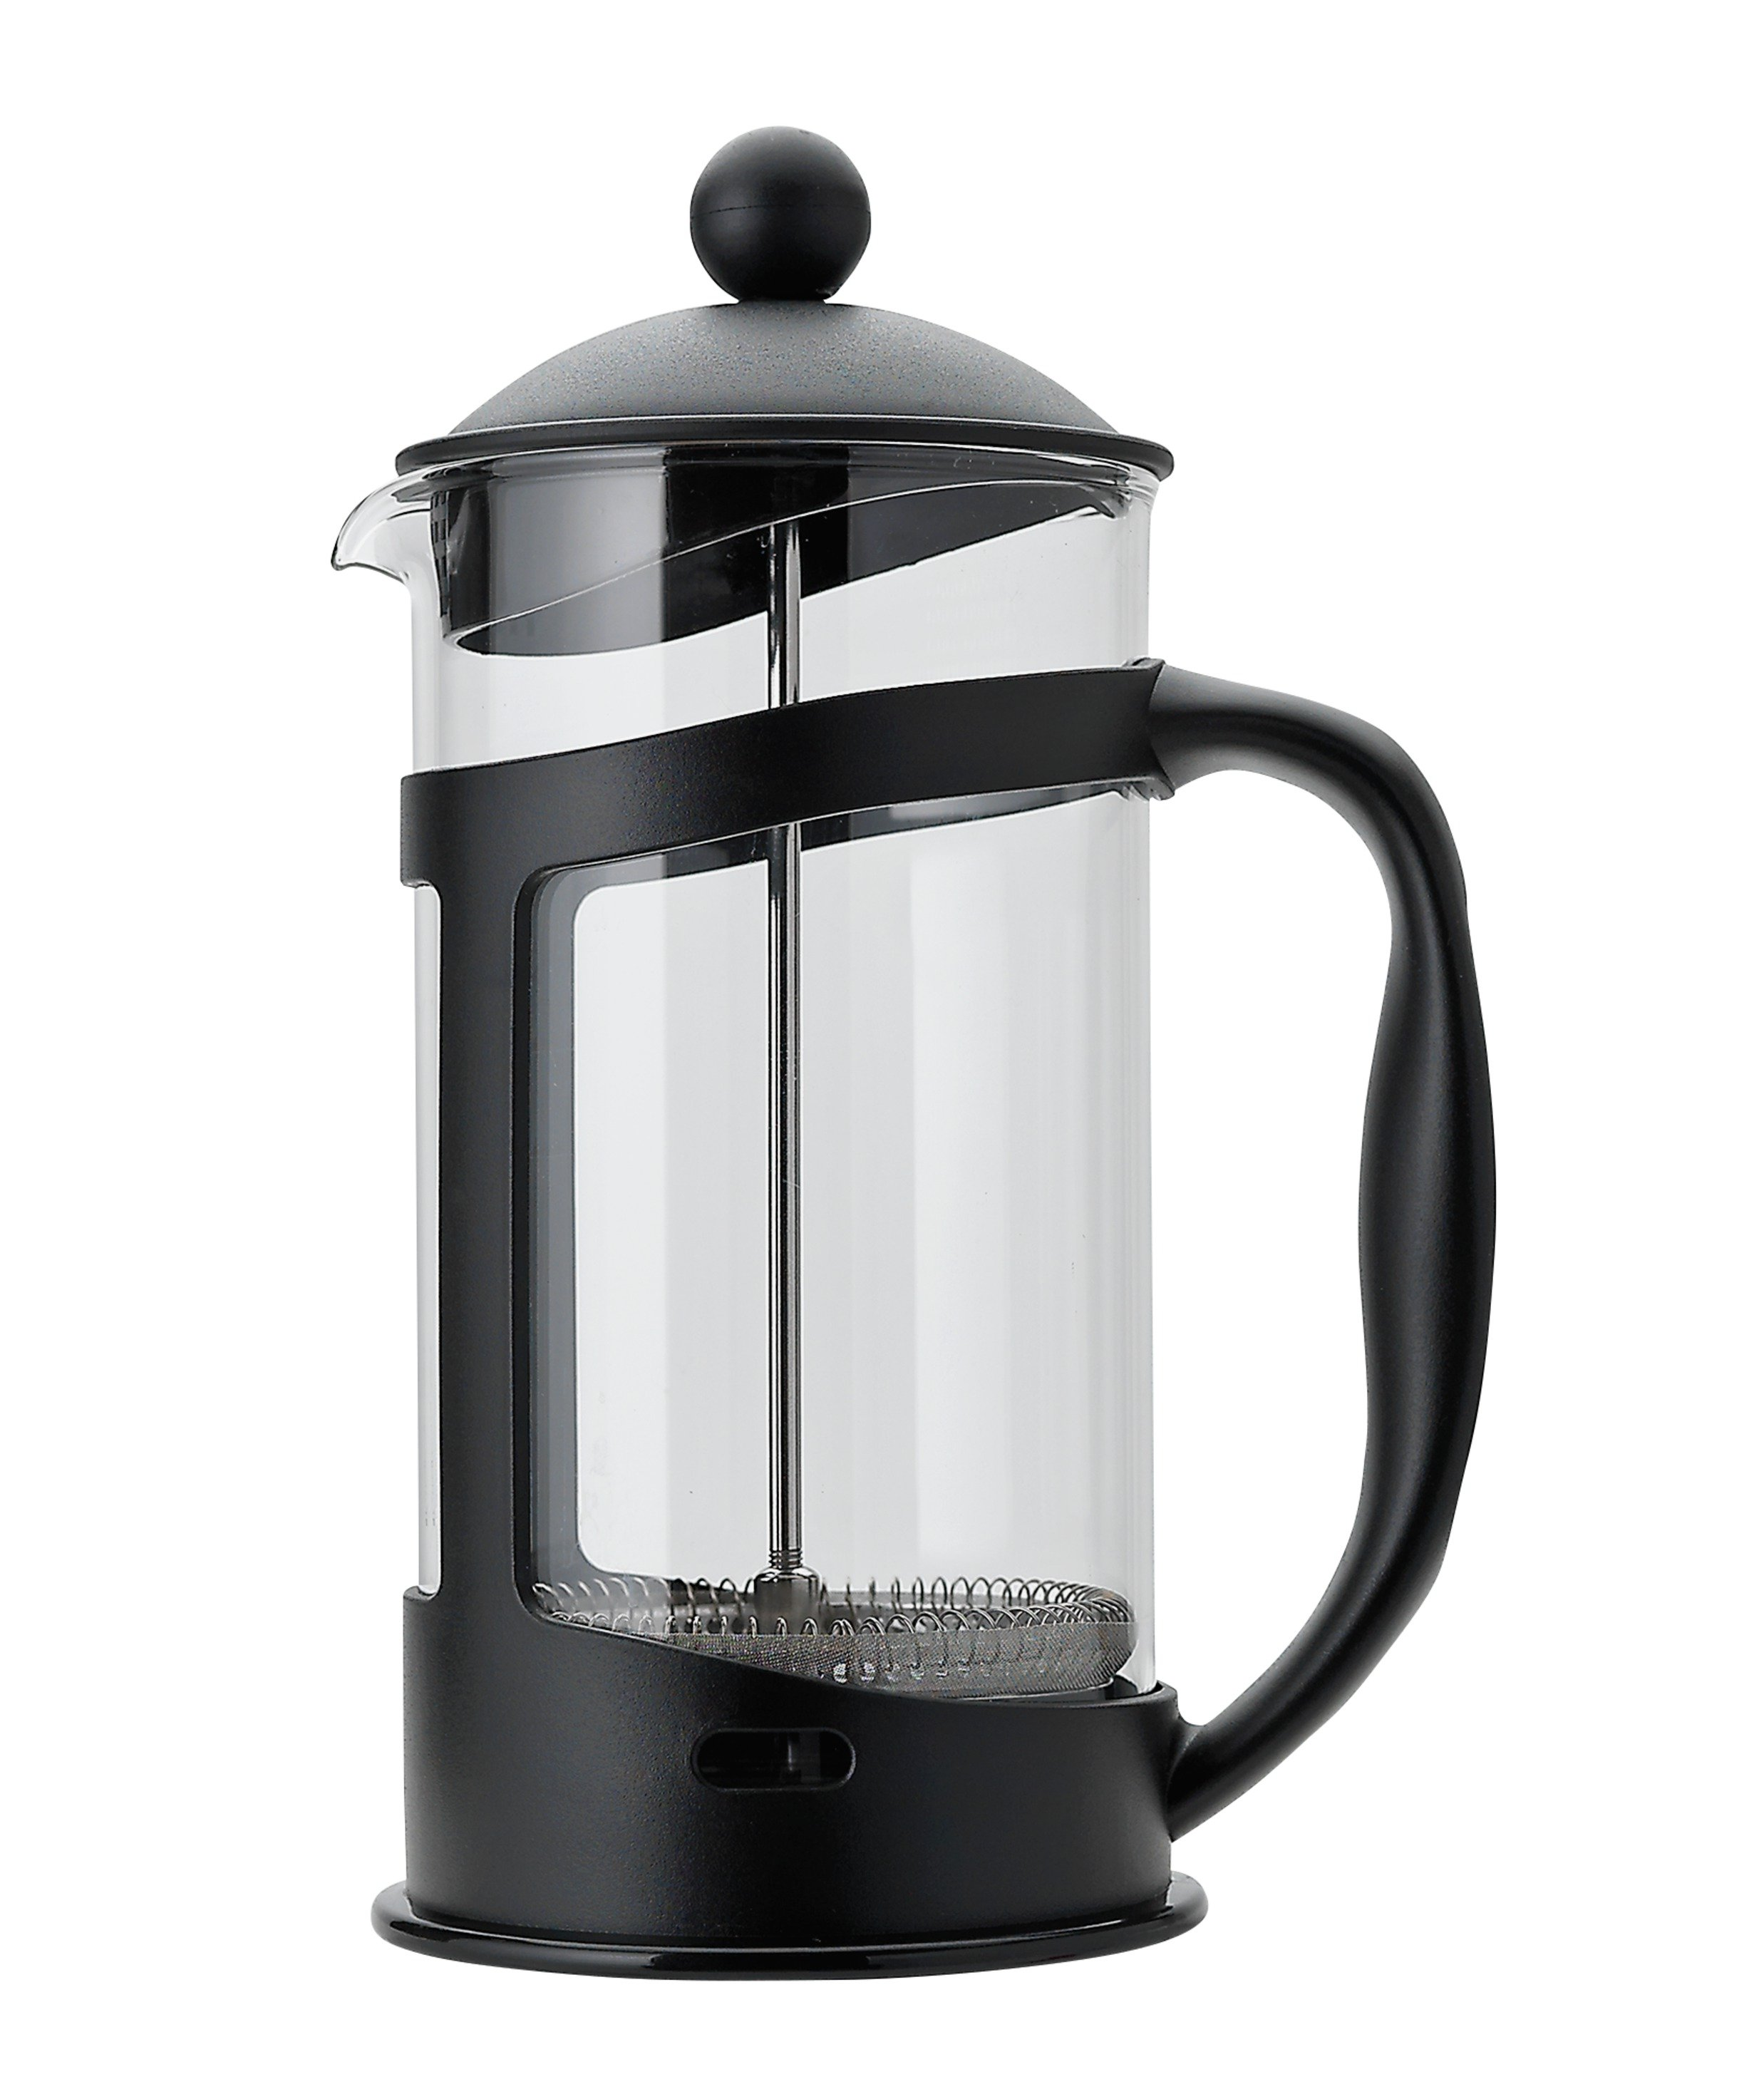 Sainsbury's Home 8 Cup Plastic Cafetiere